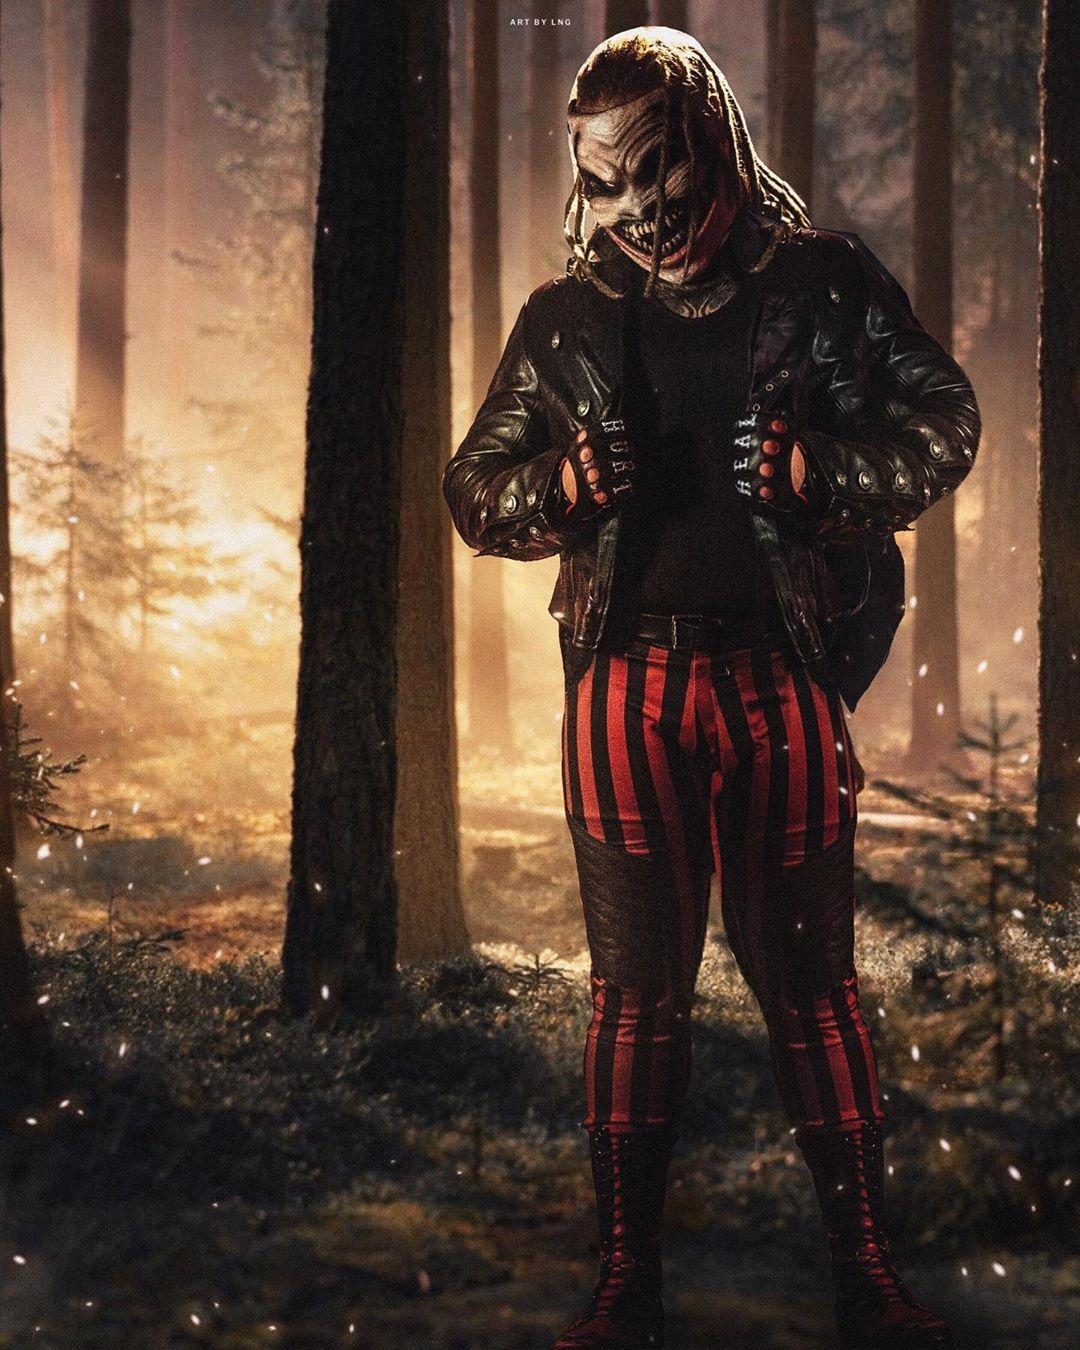 The Fiend Bray Wyatt Android Wallpapers - Wallpaper Cave